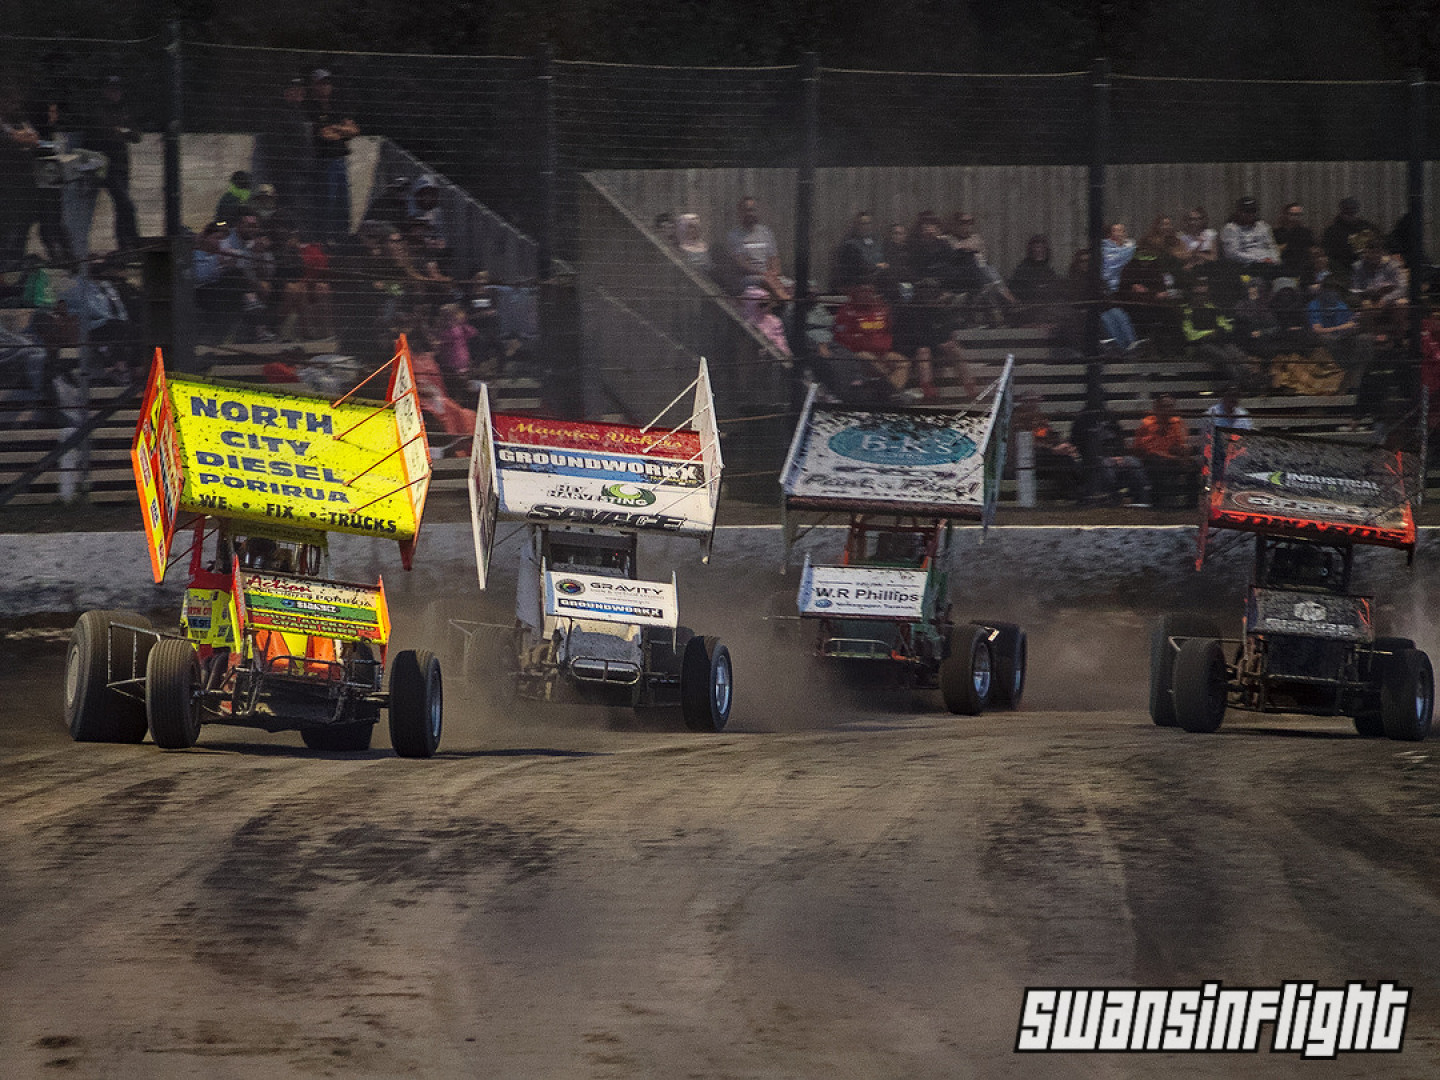 4 speedway sprintcars side by side, coming out of corner and towards the camera down the straight.